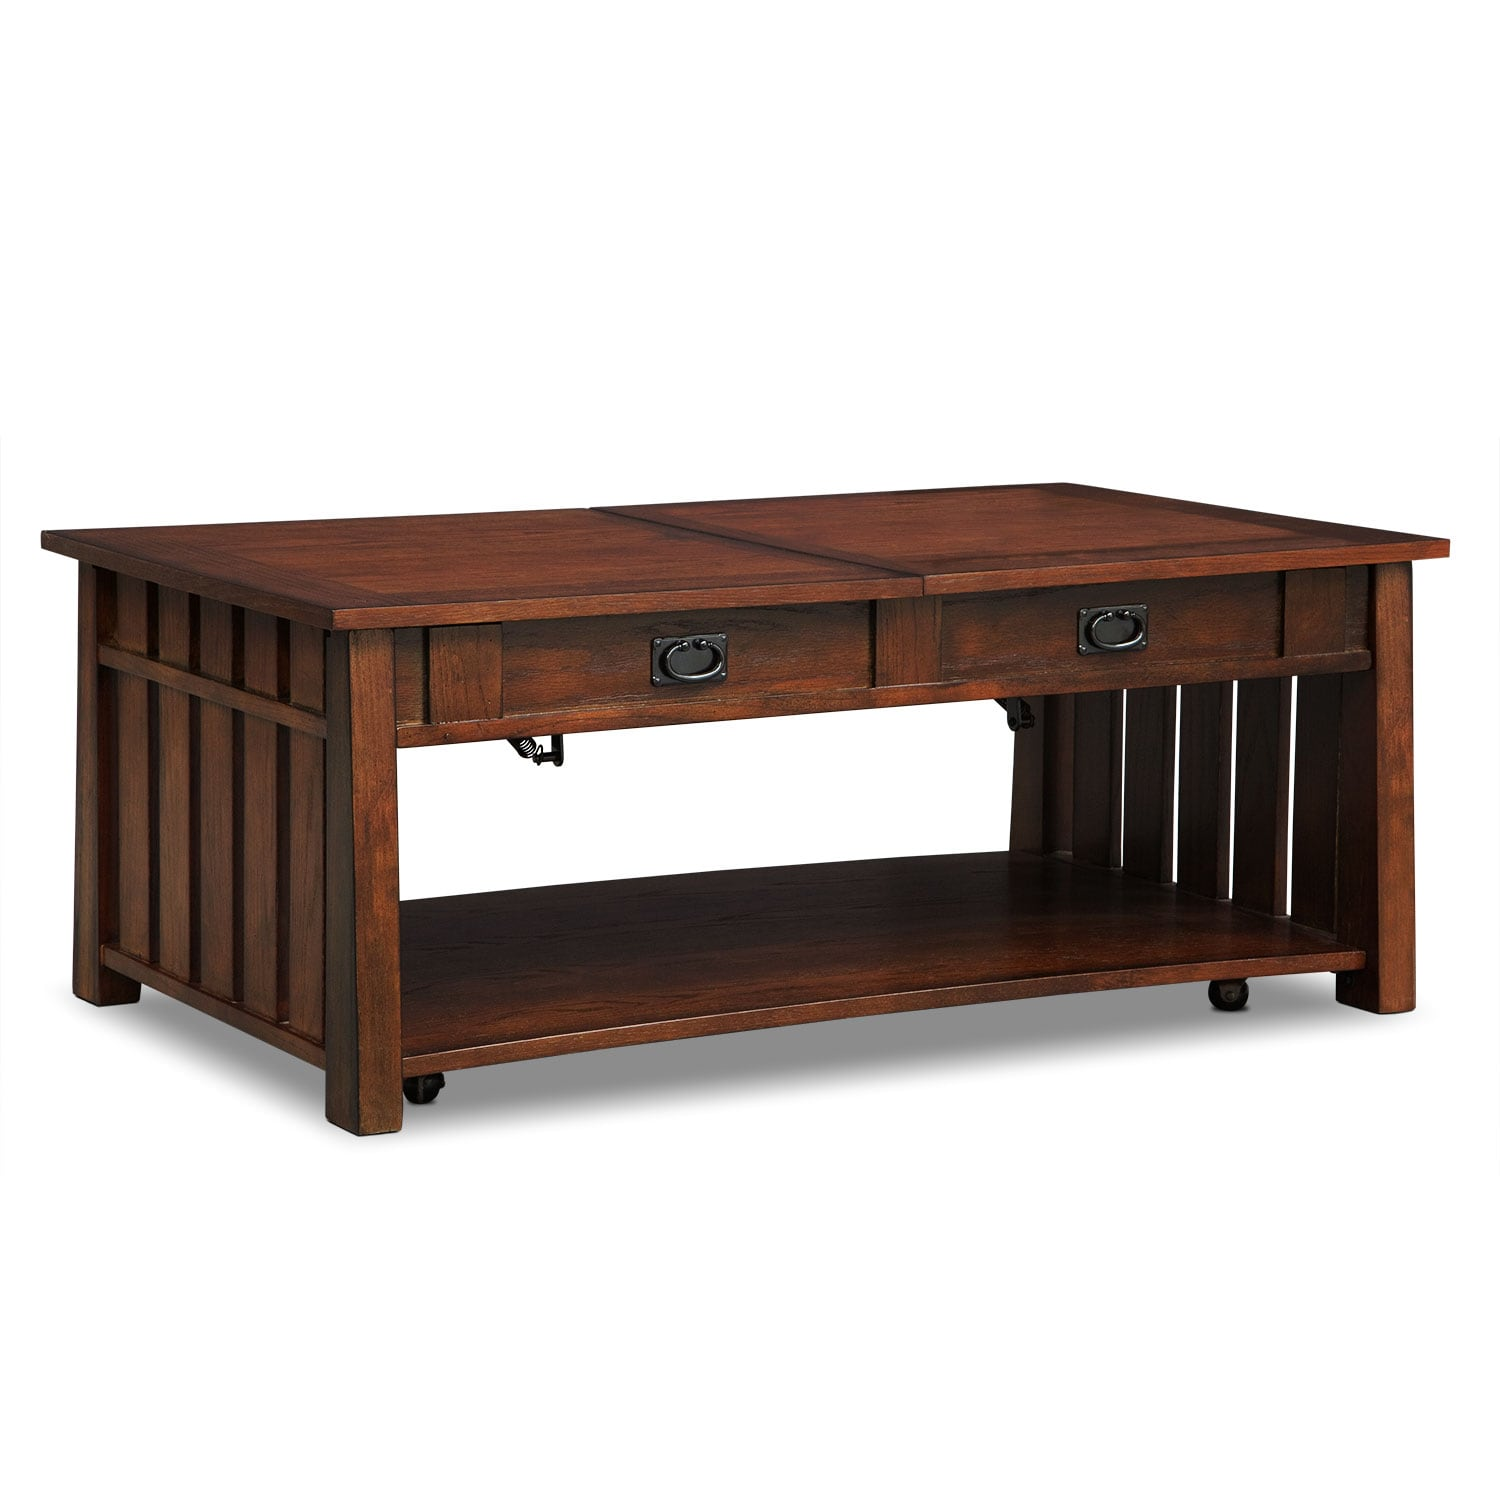 the mustang collection - brown | value city furniture